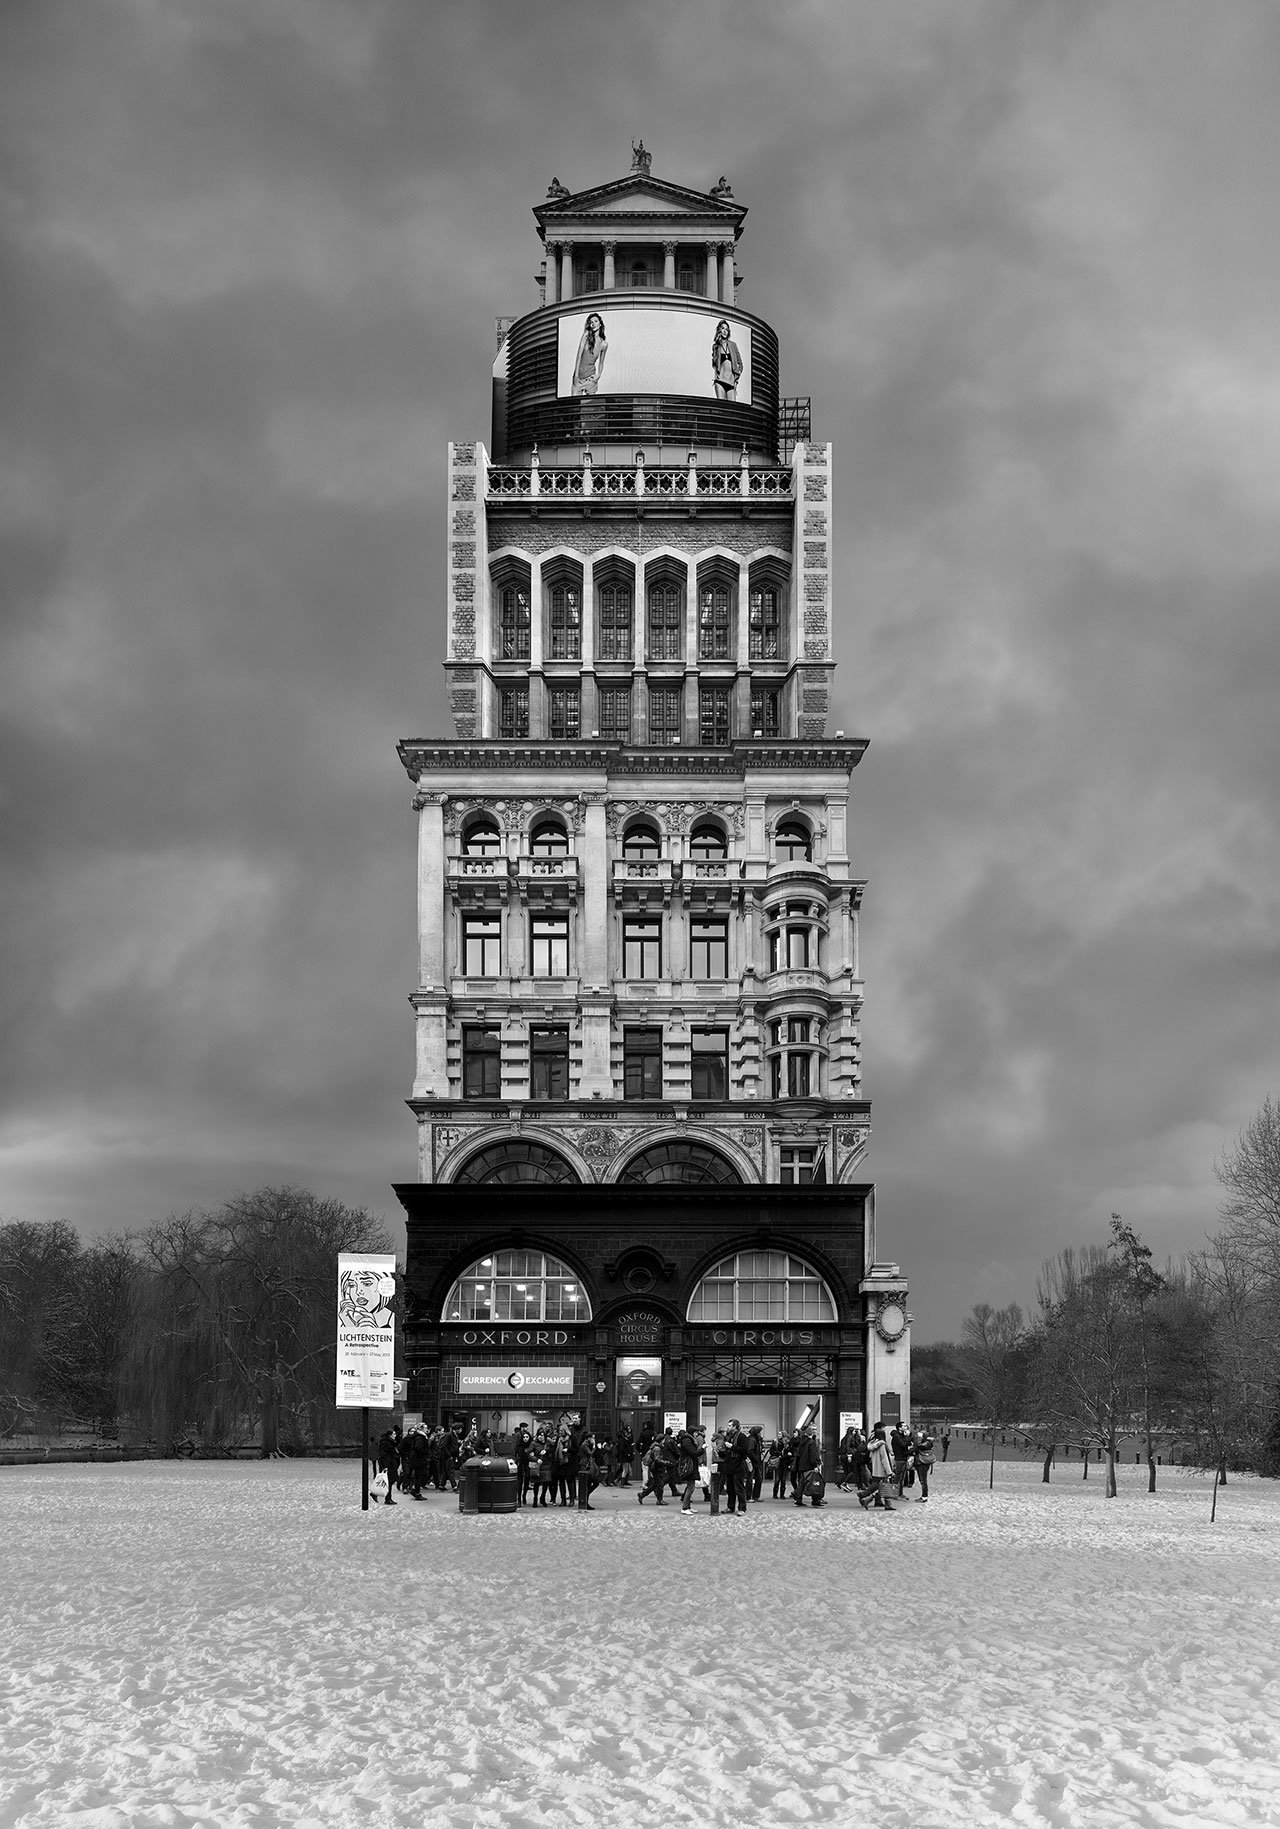 Beomsik Won,Archisculpture 027, 2014. Archival pigment print, 70x49 or 100x70 or 142x100cm.